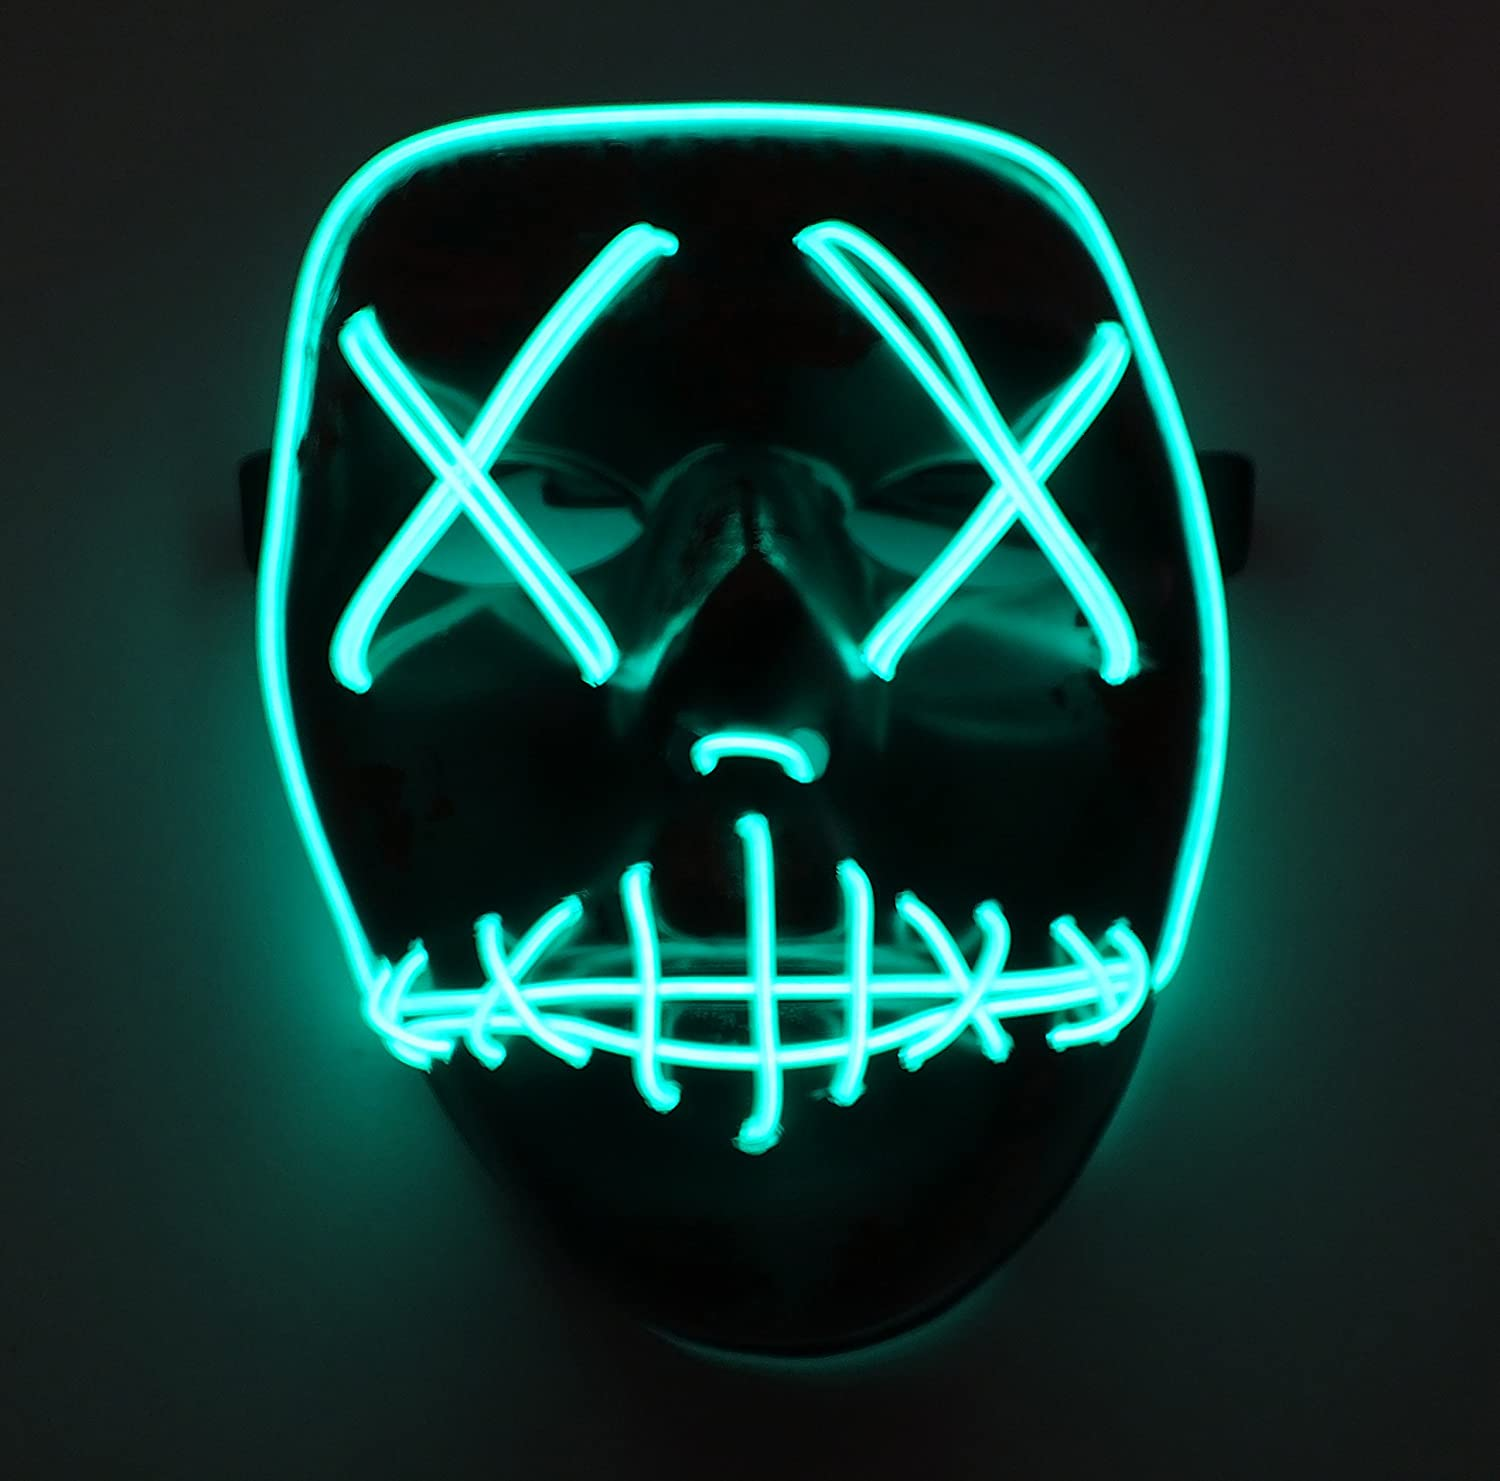 Amazon.com: ASVP Shop LED Light Up Mask from The Purge Election Year - Great for Festival, Cosplay, Halloween, Costume - One Size: Clothing